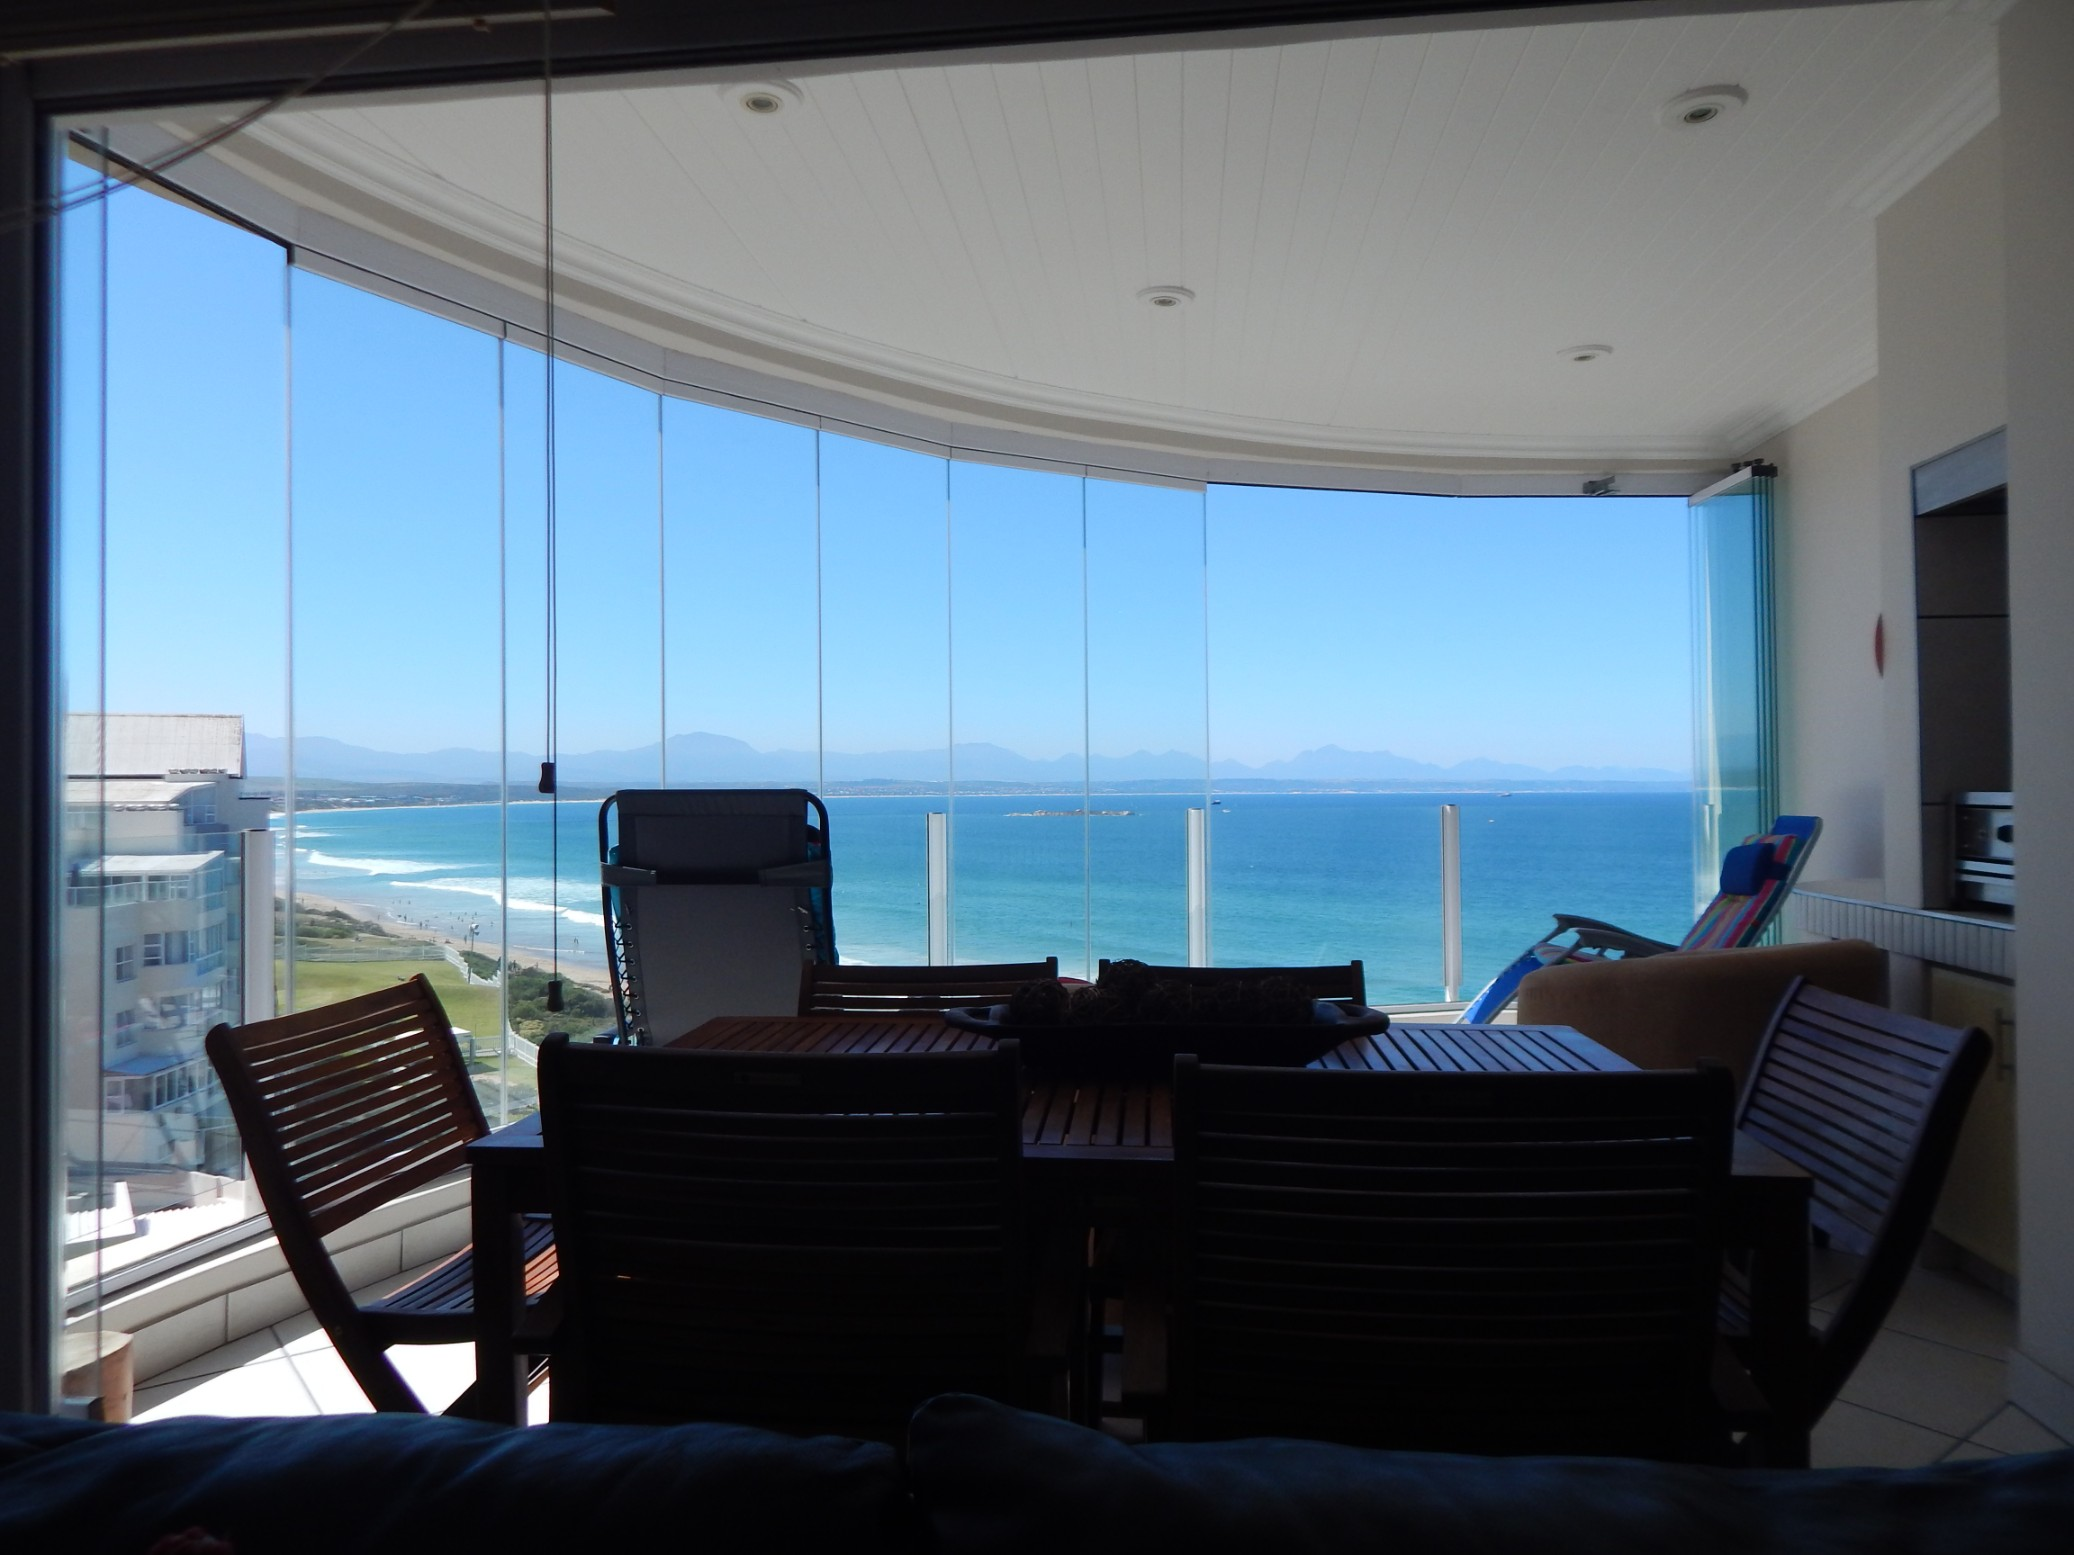 3 Bedroom Apartment for sale in Diaz Beach ENT0069020 : photo#18